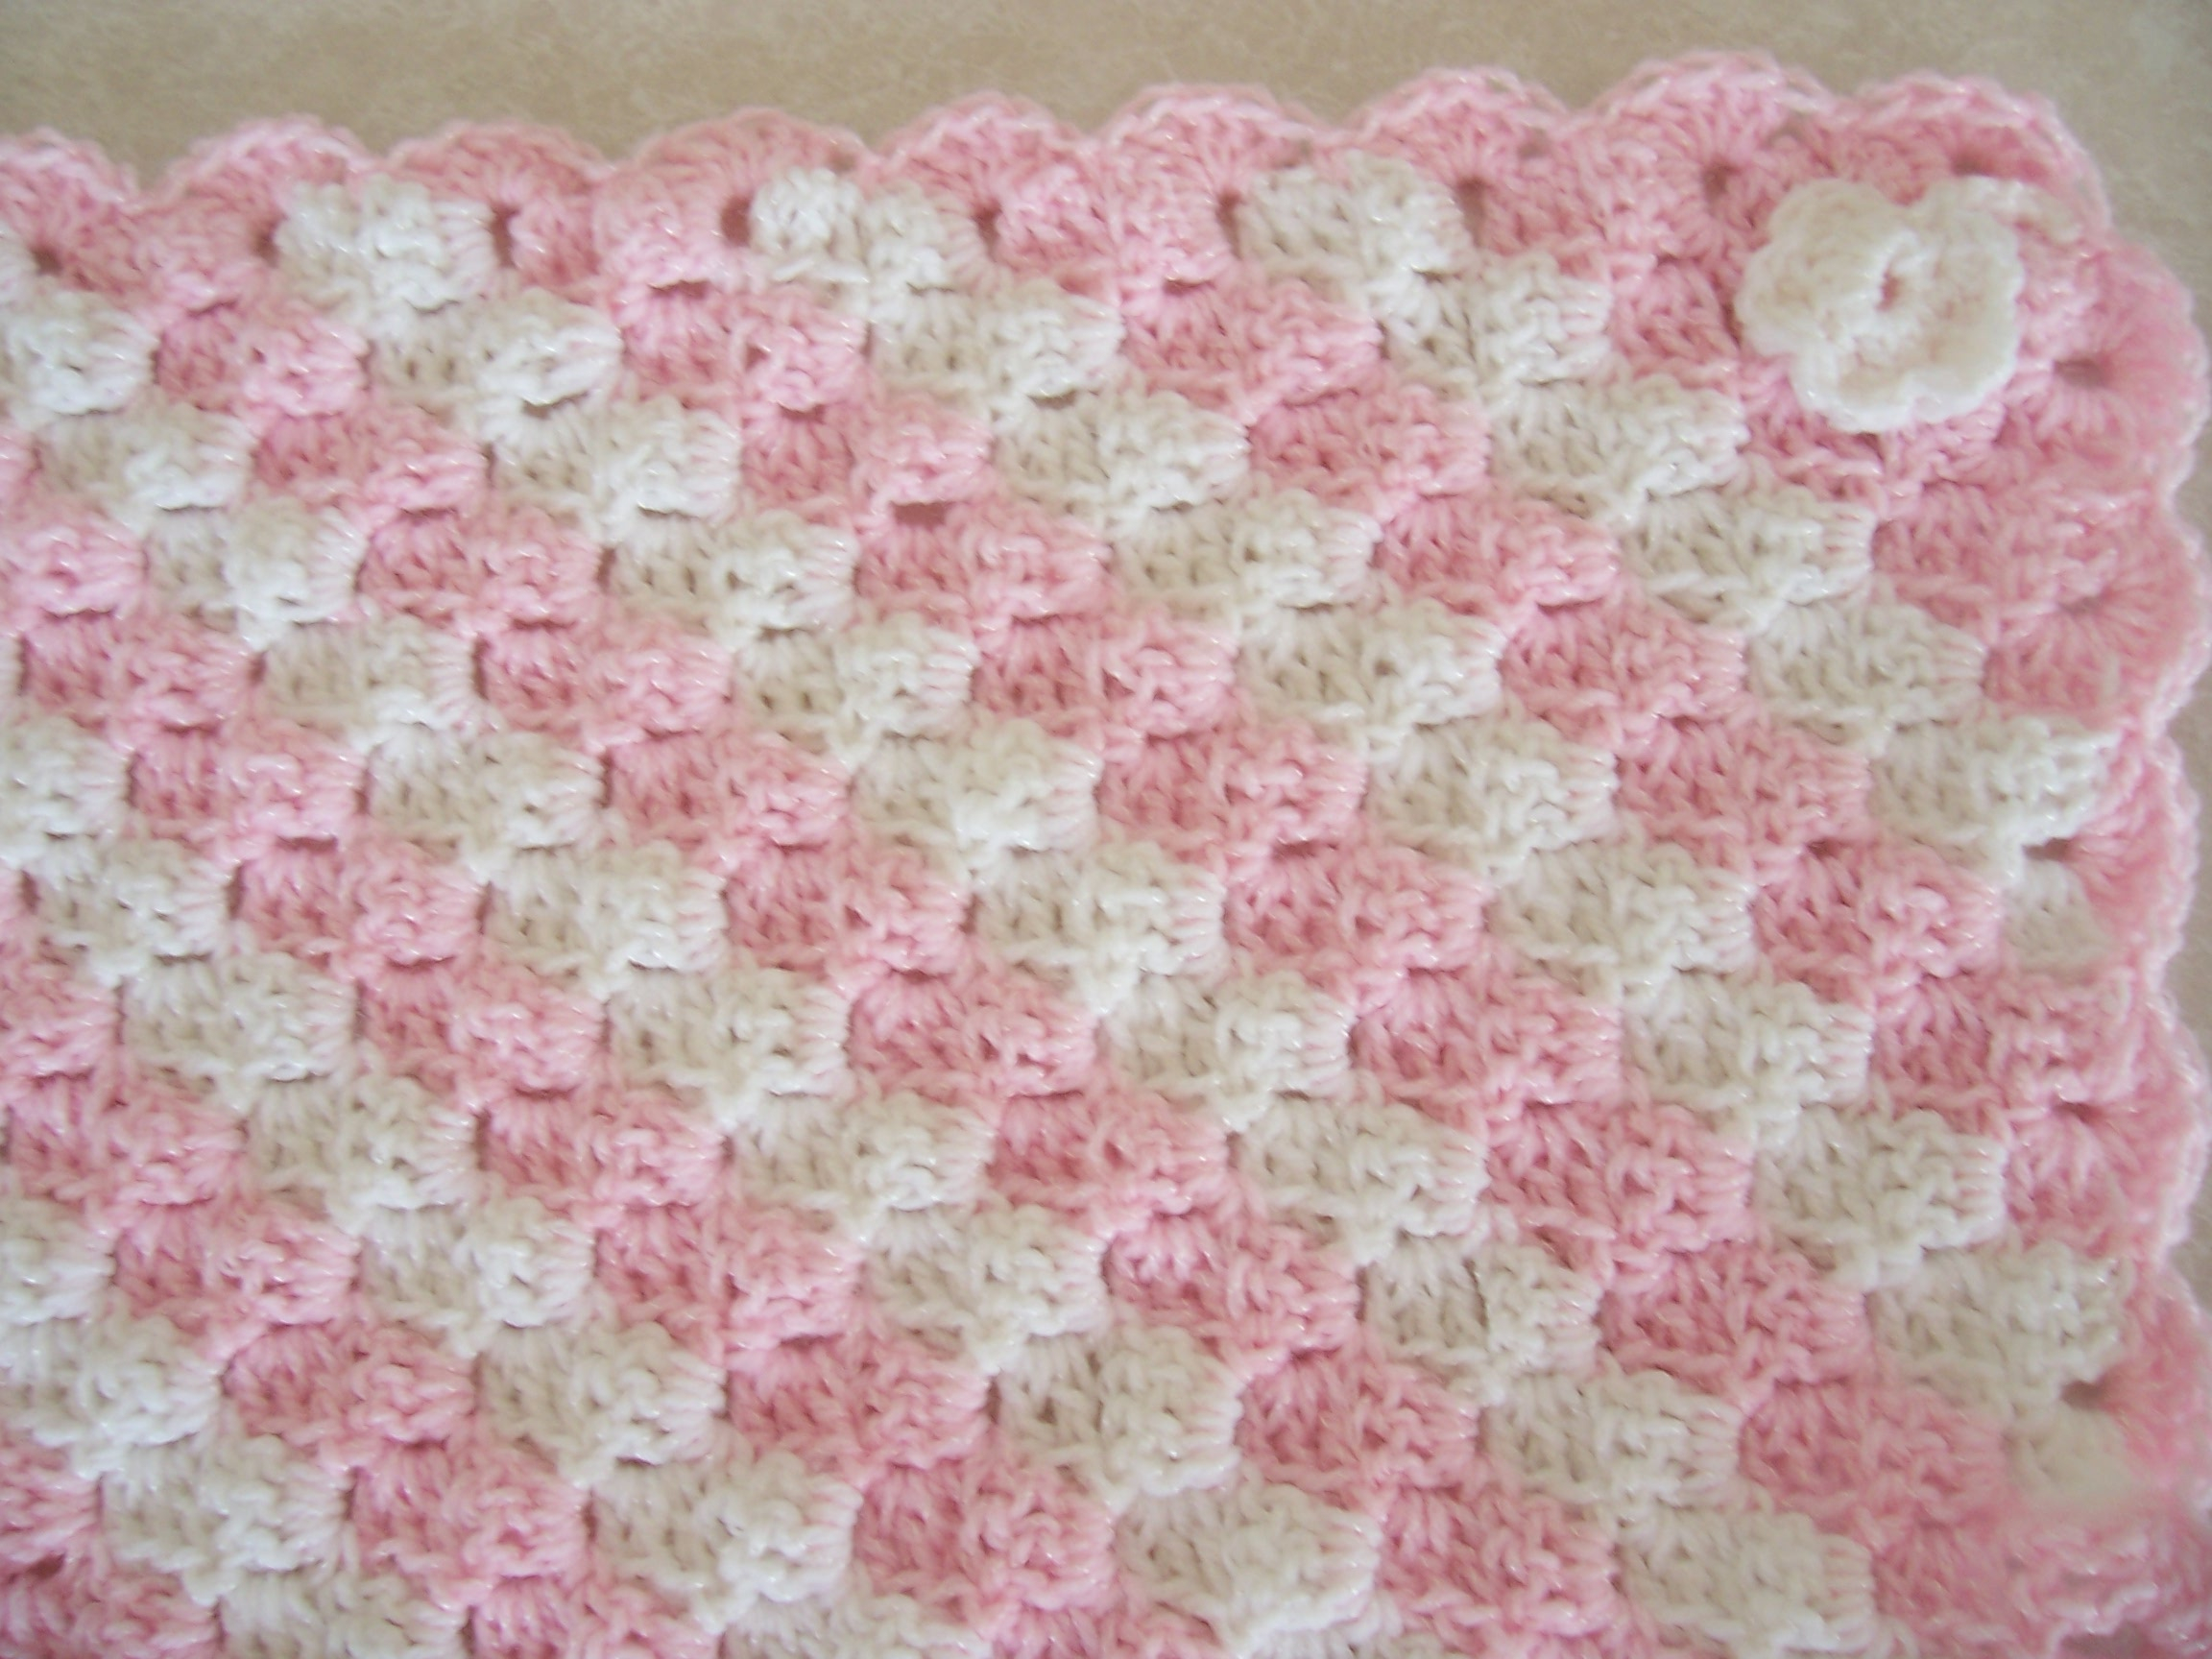 Beginner Crochet Projects Baby Blankets Easy Crochet Ba Blanket Patterns Crochet And Knit